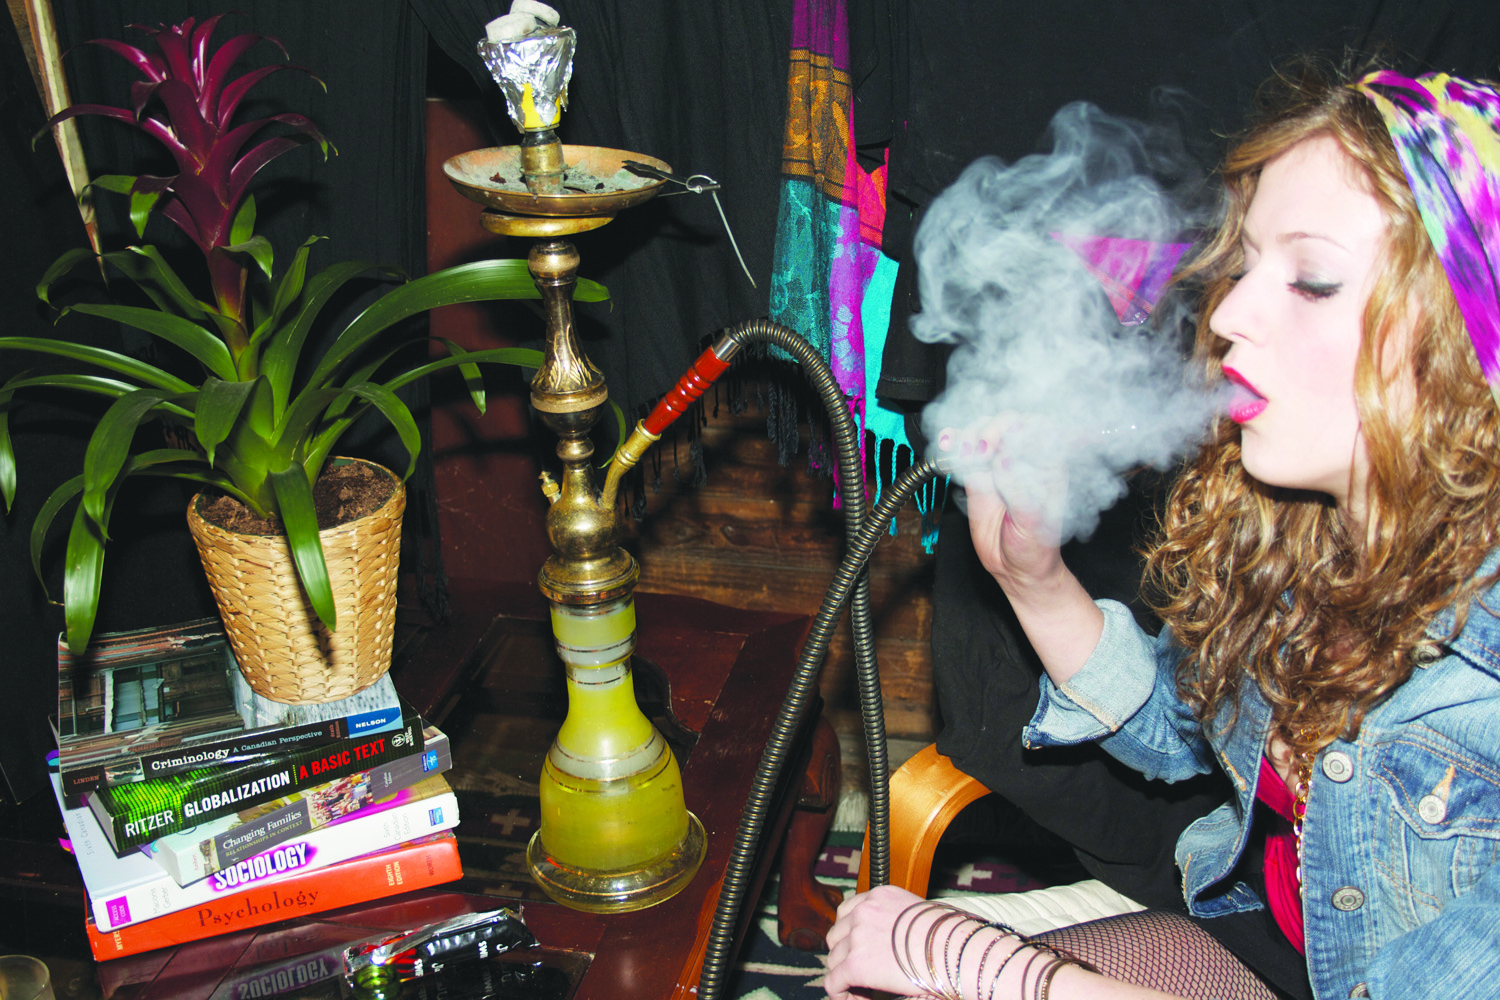 Hubbly Bubbly is Bad for you! | Teenzone